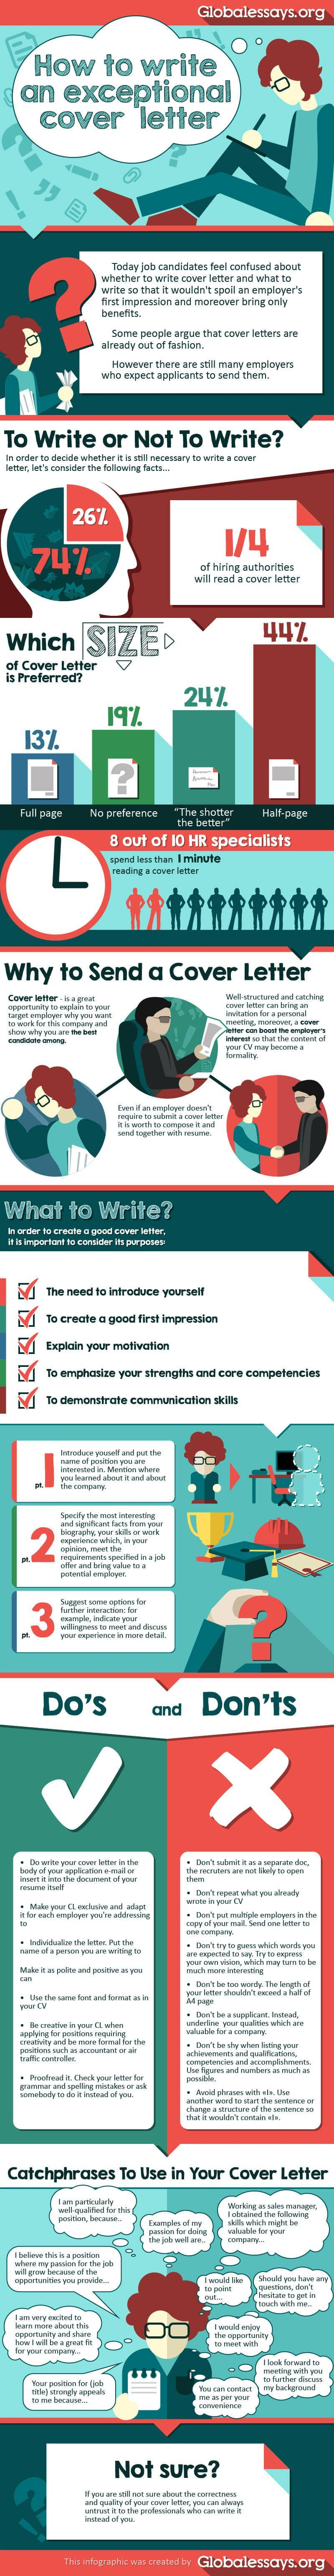 How to Write an Exceptional Cover Letter [Infographic